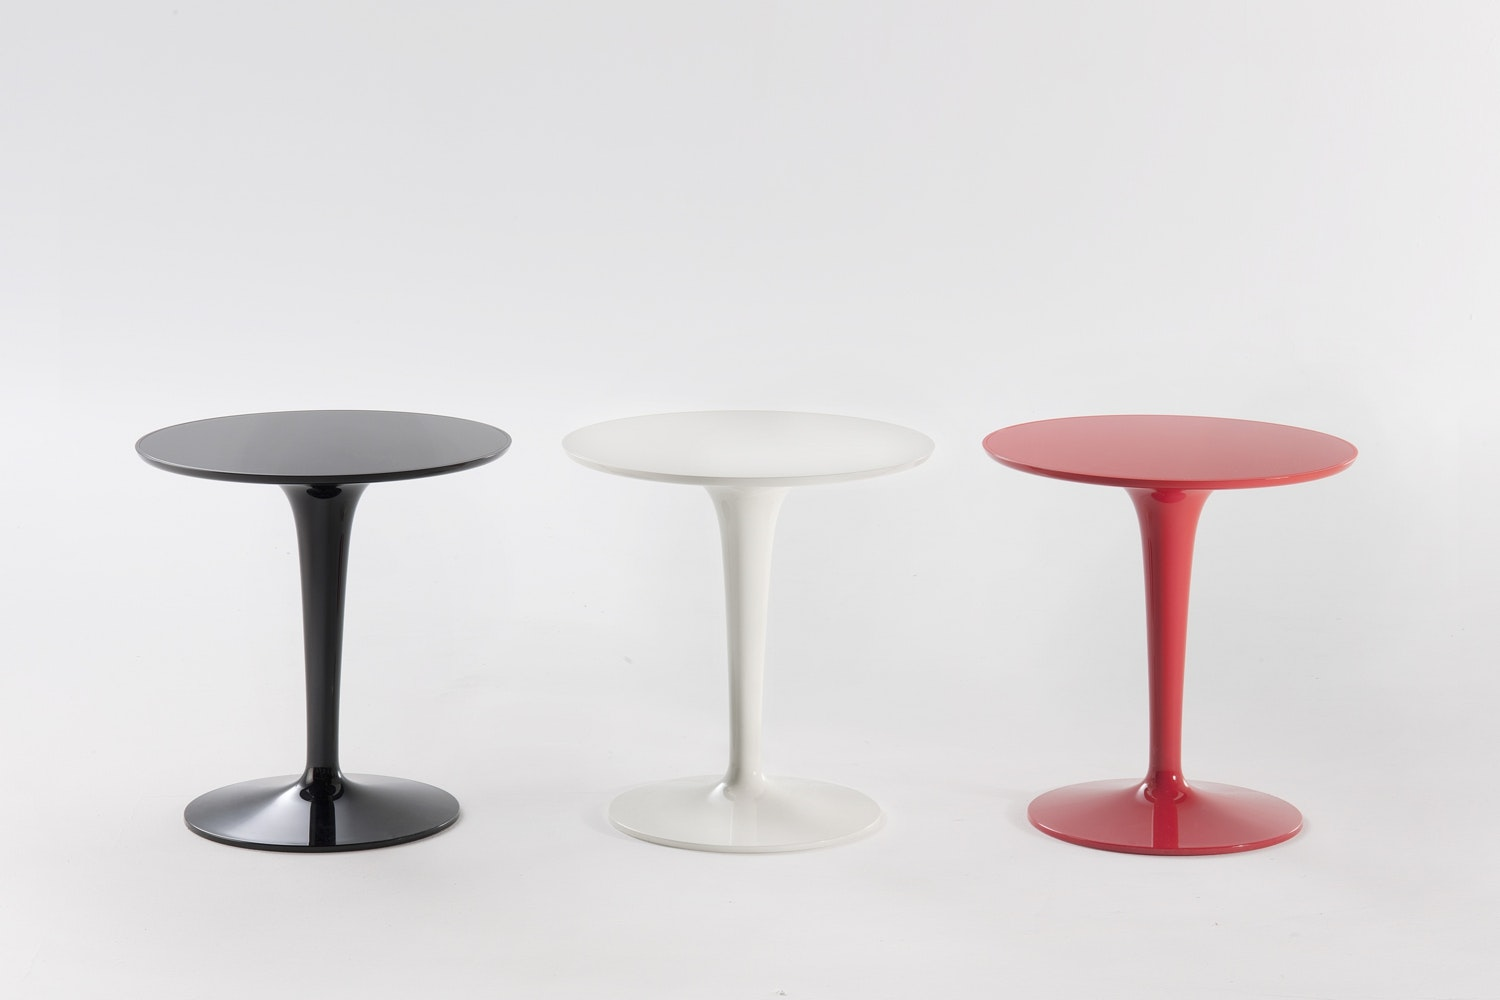 TipTop Mono Table by Philippe Starck with Eugeni Quitllet for Kartell